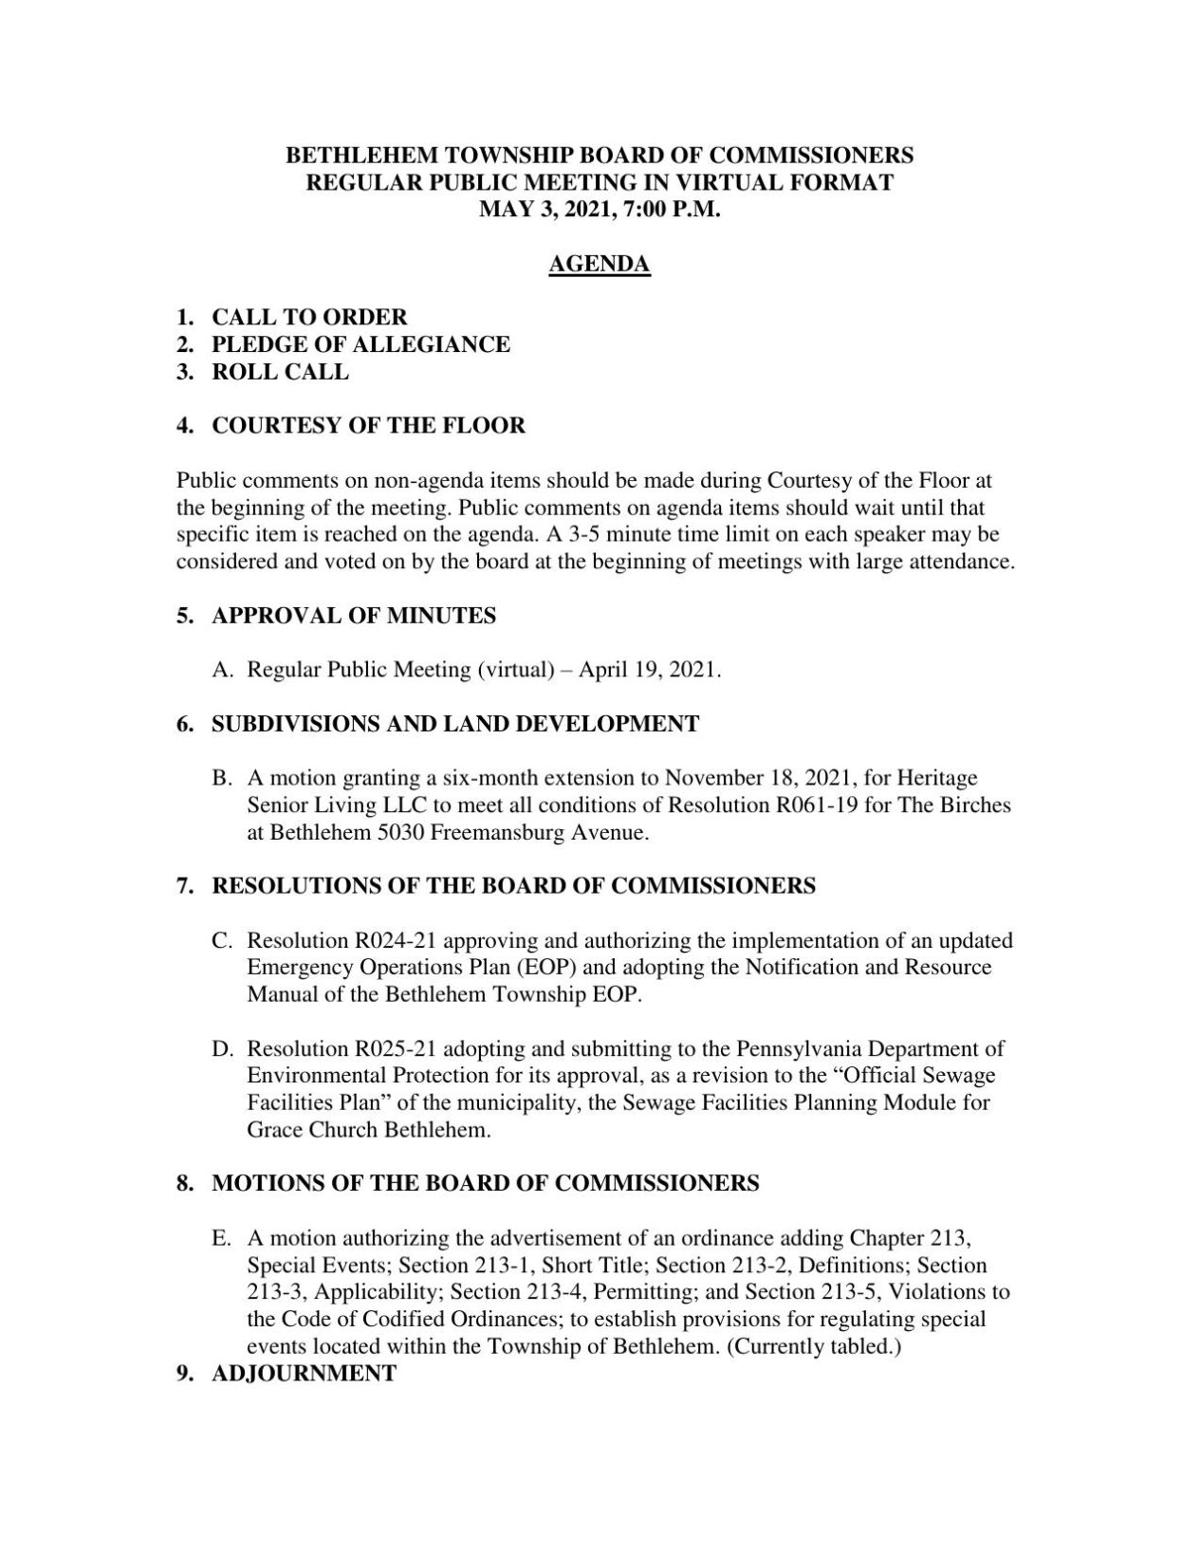 Bethlehem Township Board of Commissioners Meeting